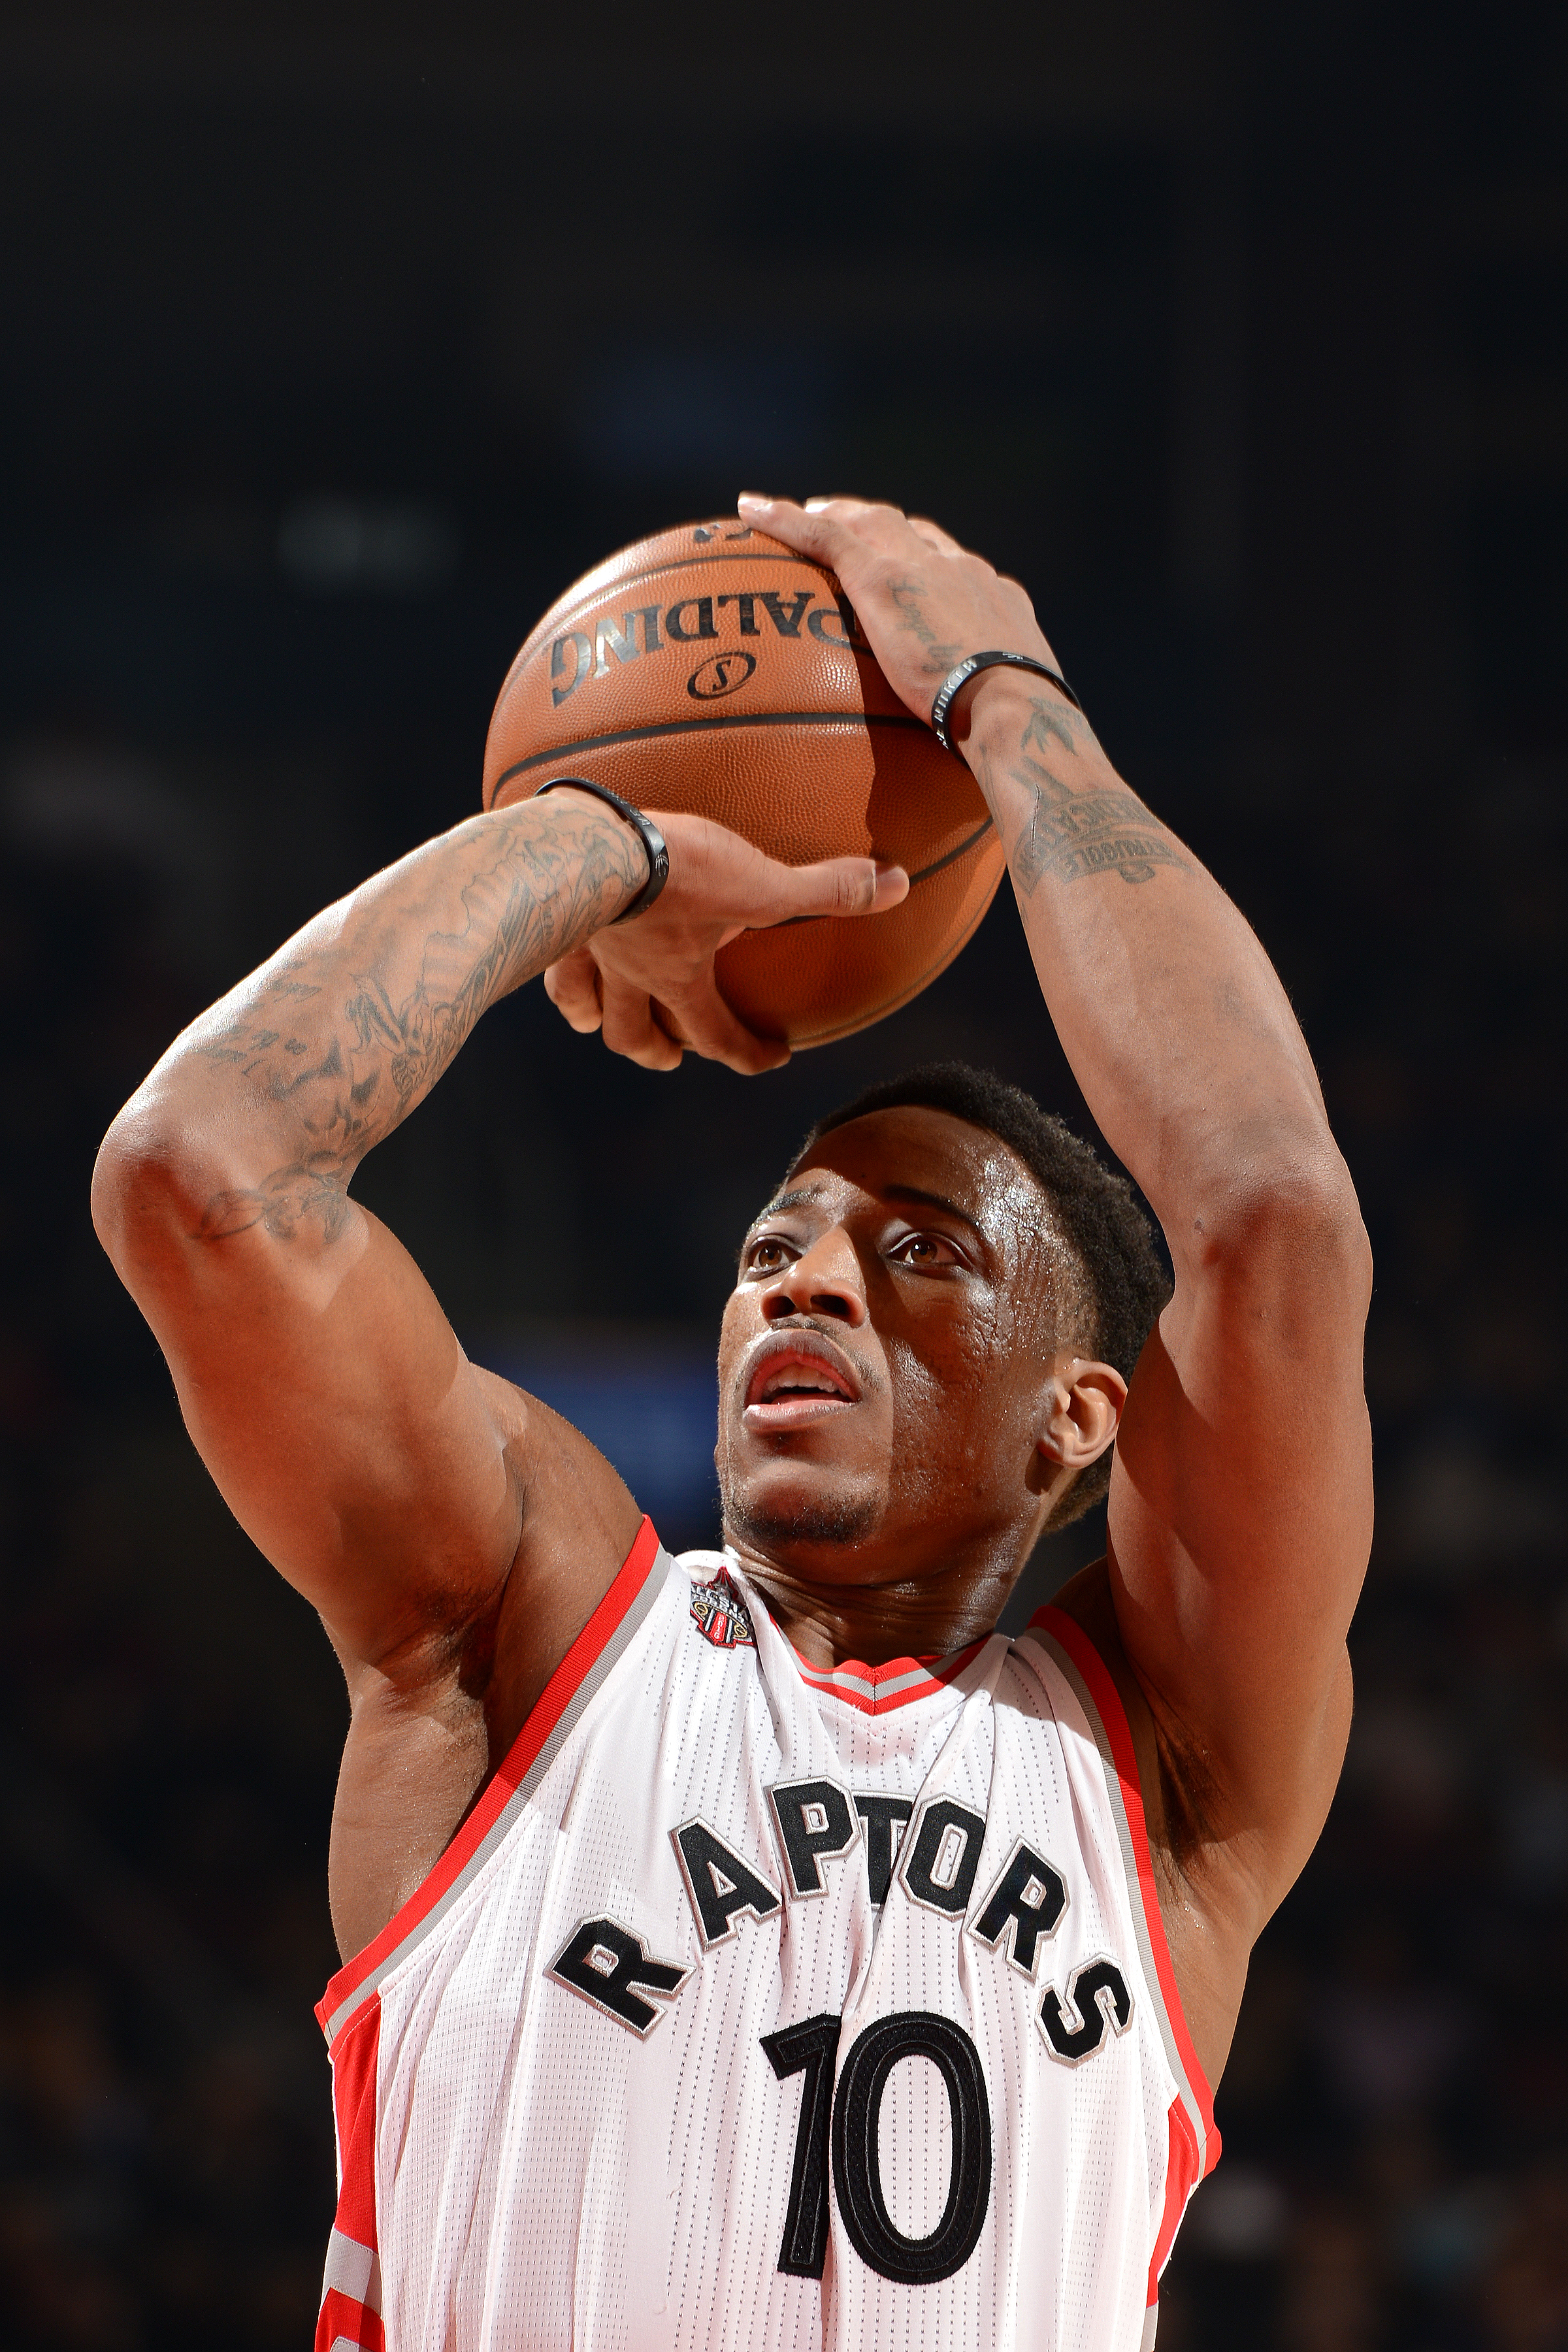 TORONTO, CANADA - MARCH 4: DeMar DeRozan #10 of the Toronto Raptors shoots a free throw during the game against the Portland Trail Blazers on March 4, 2016 at the Air Canada Centre in Toronto, Ontario, Canada.  (Photo by Ron Turenne/NBAE via Getty Images)